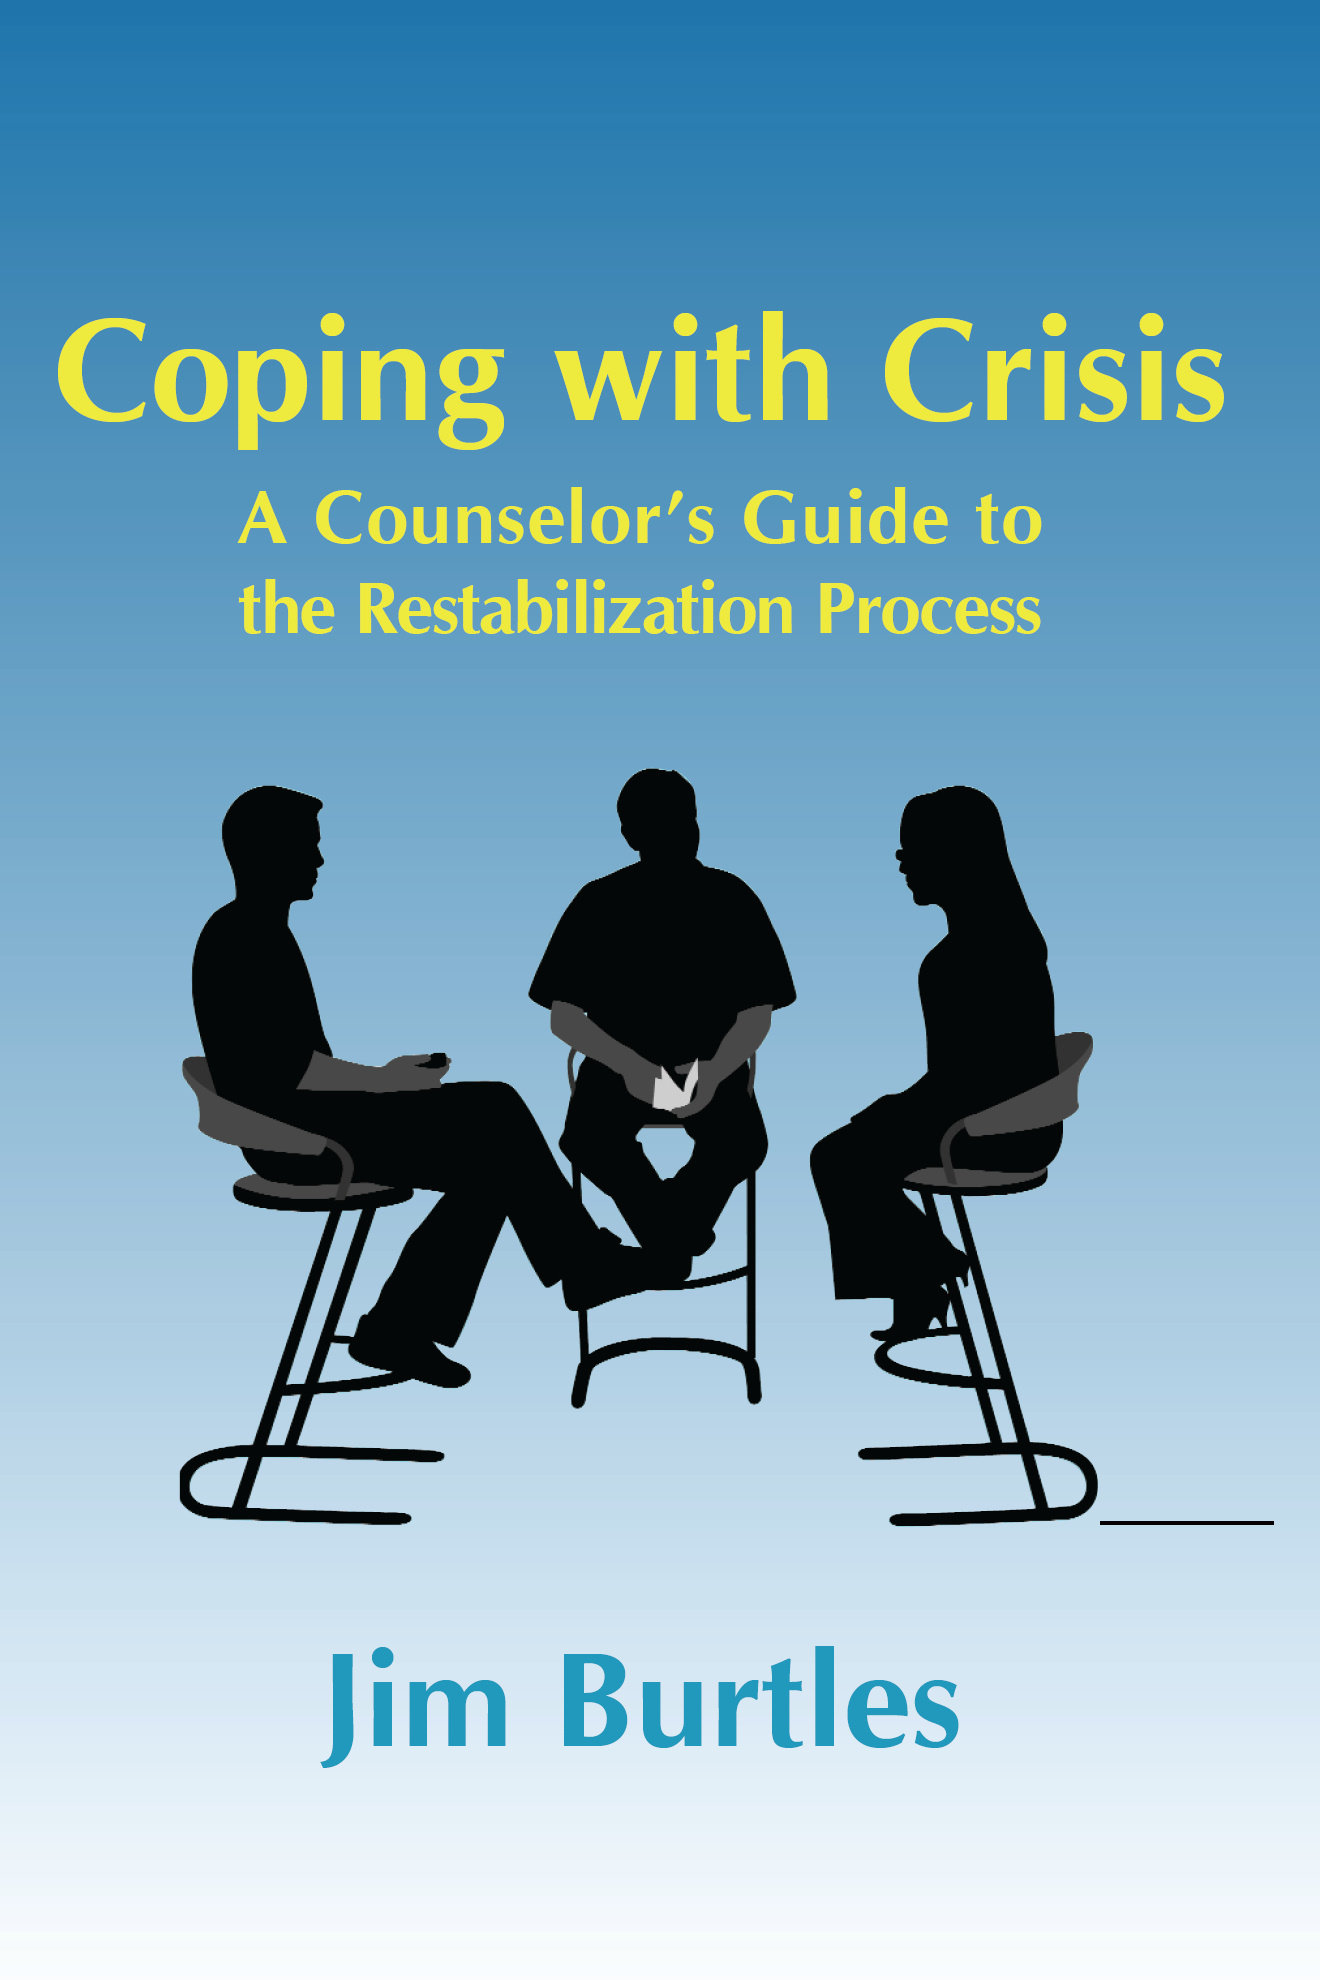 Coping with Crisis: A Counsellor's Guide to the Restabilization Process 978-1-932690-41-5